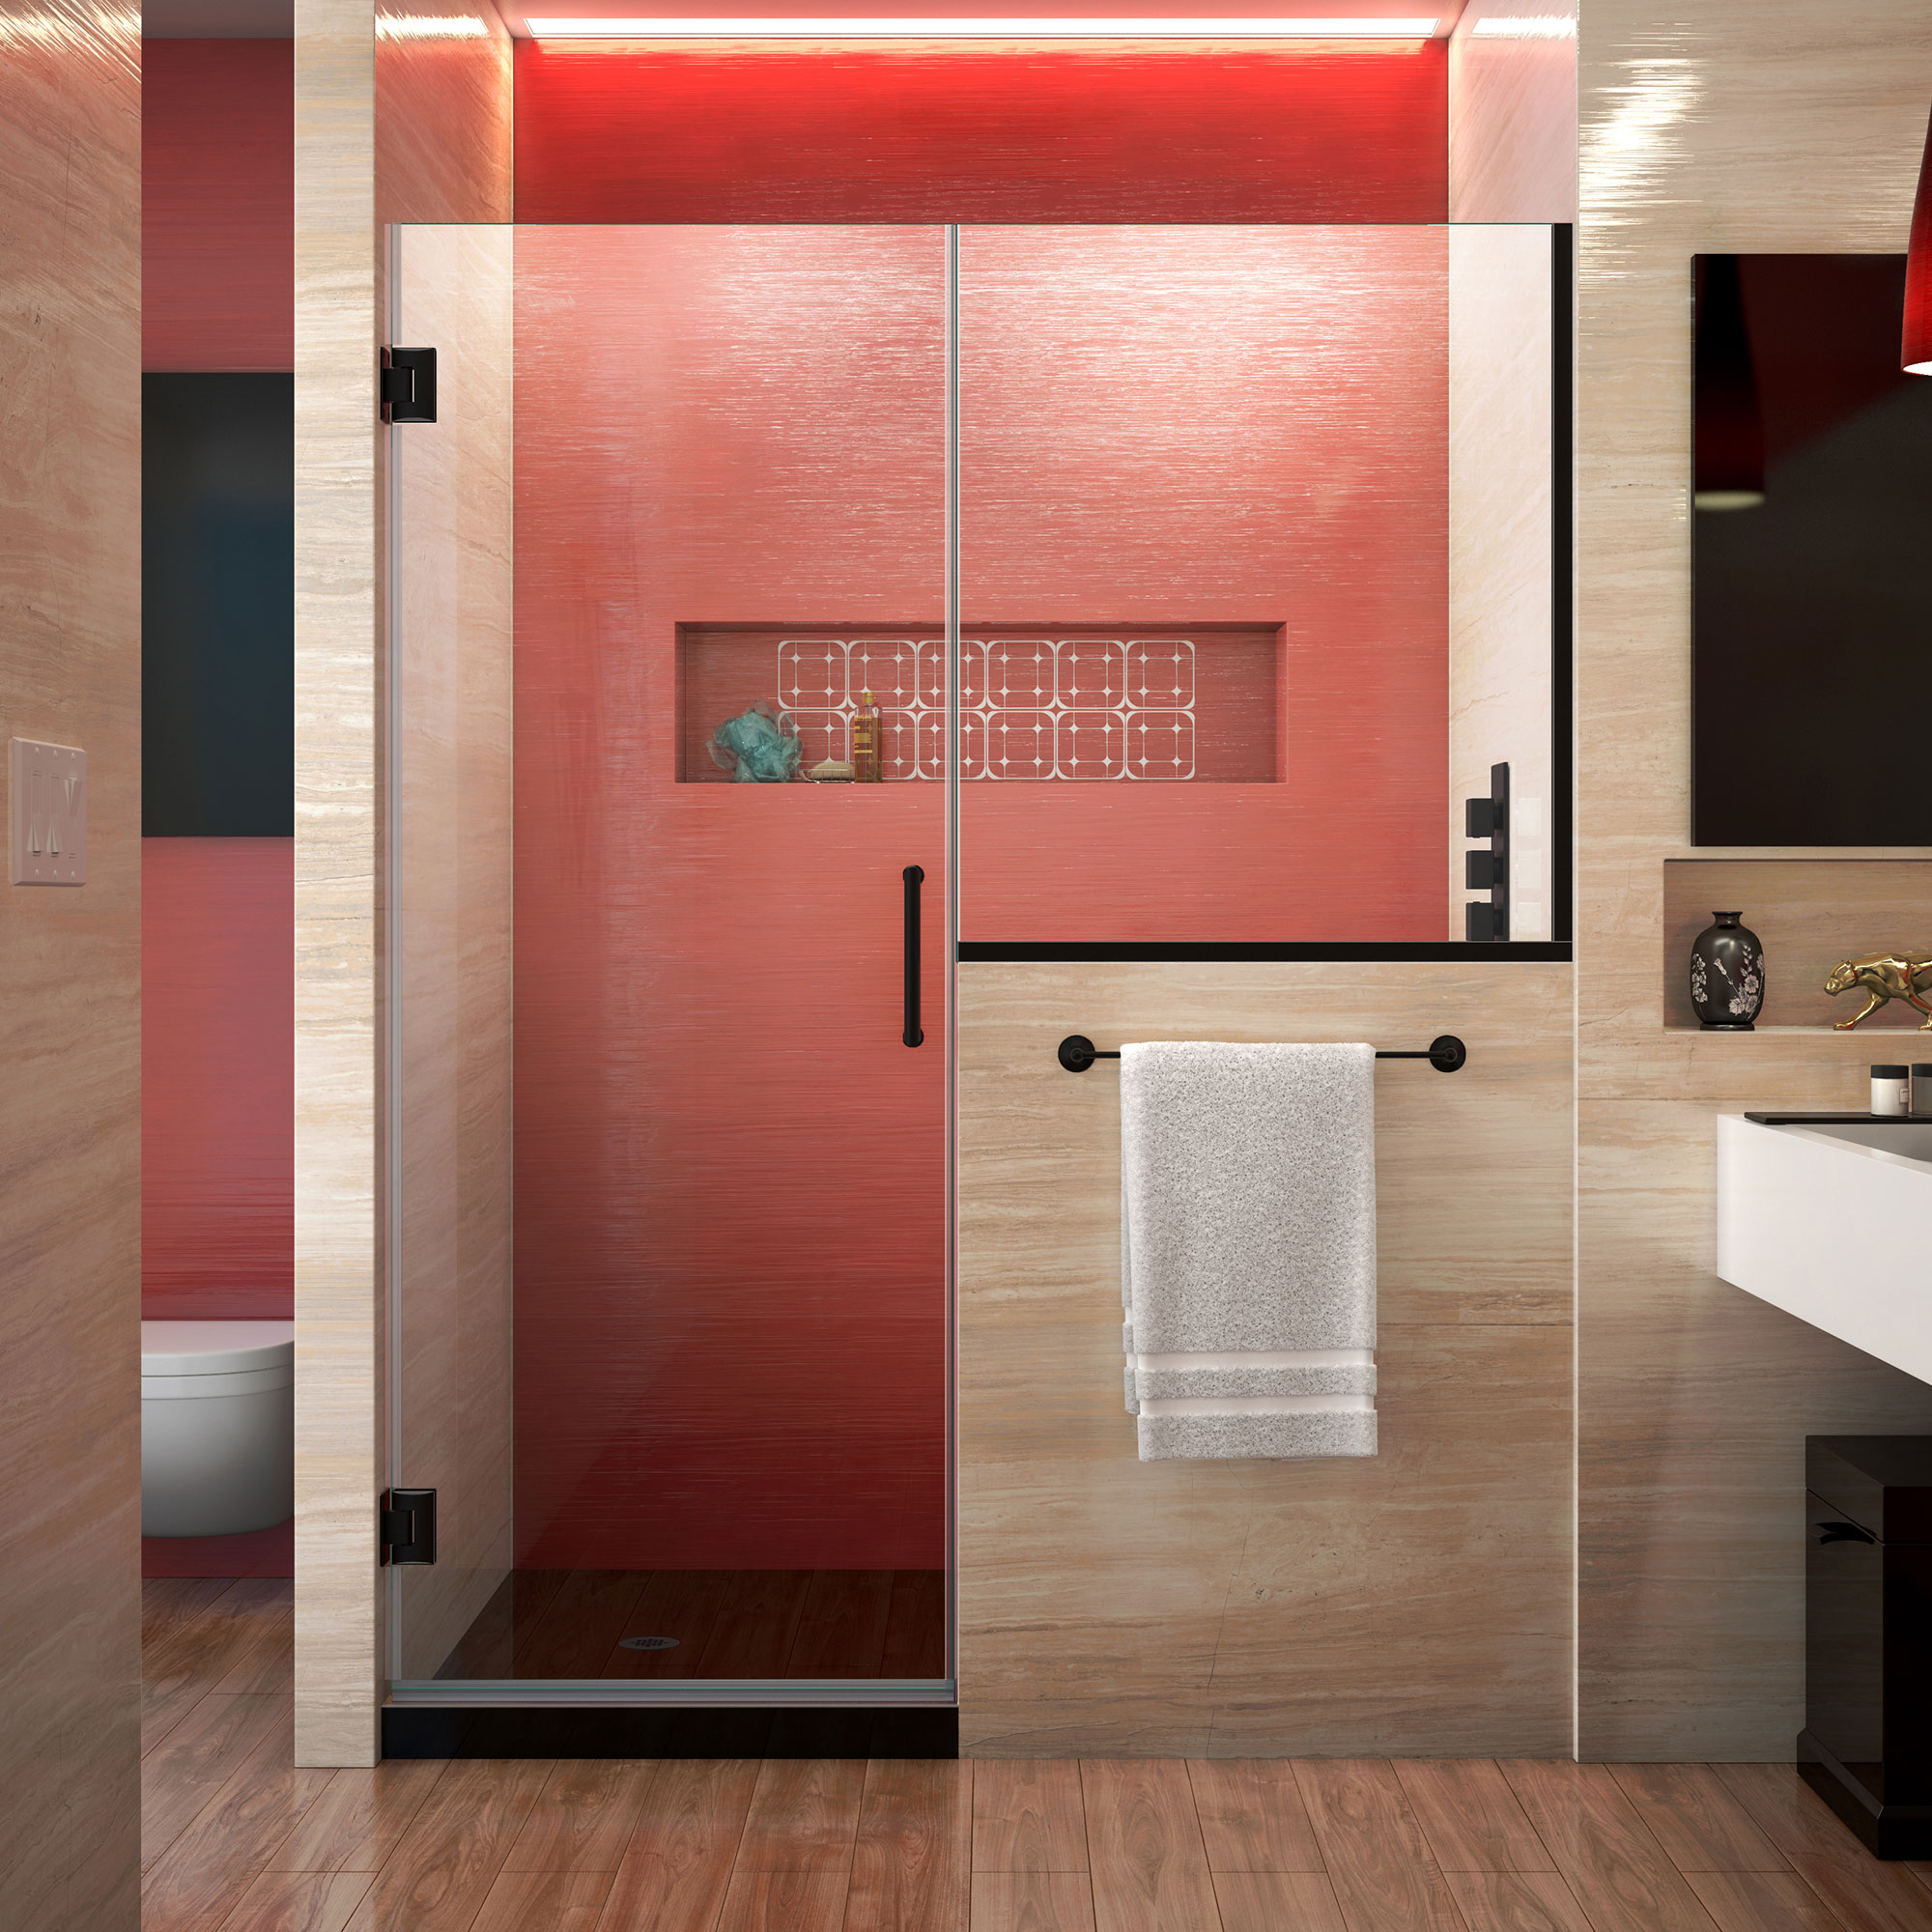 DreamLine Unidoor Plus 58-58 1/2 in. W x 72 in. H Frameless Hinged Shower Door with 34 in. Half Panel in Satin Black